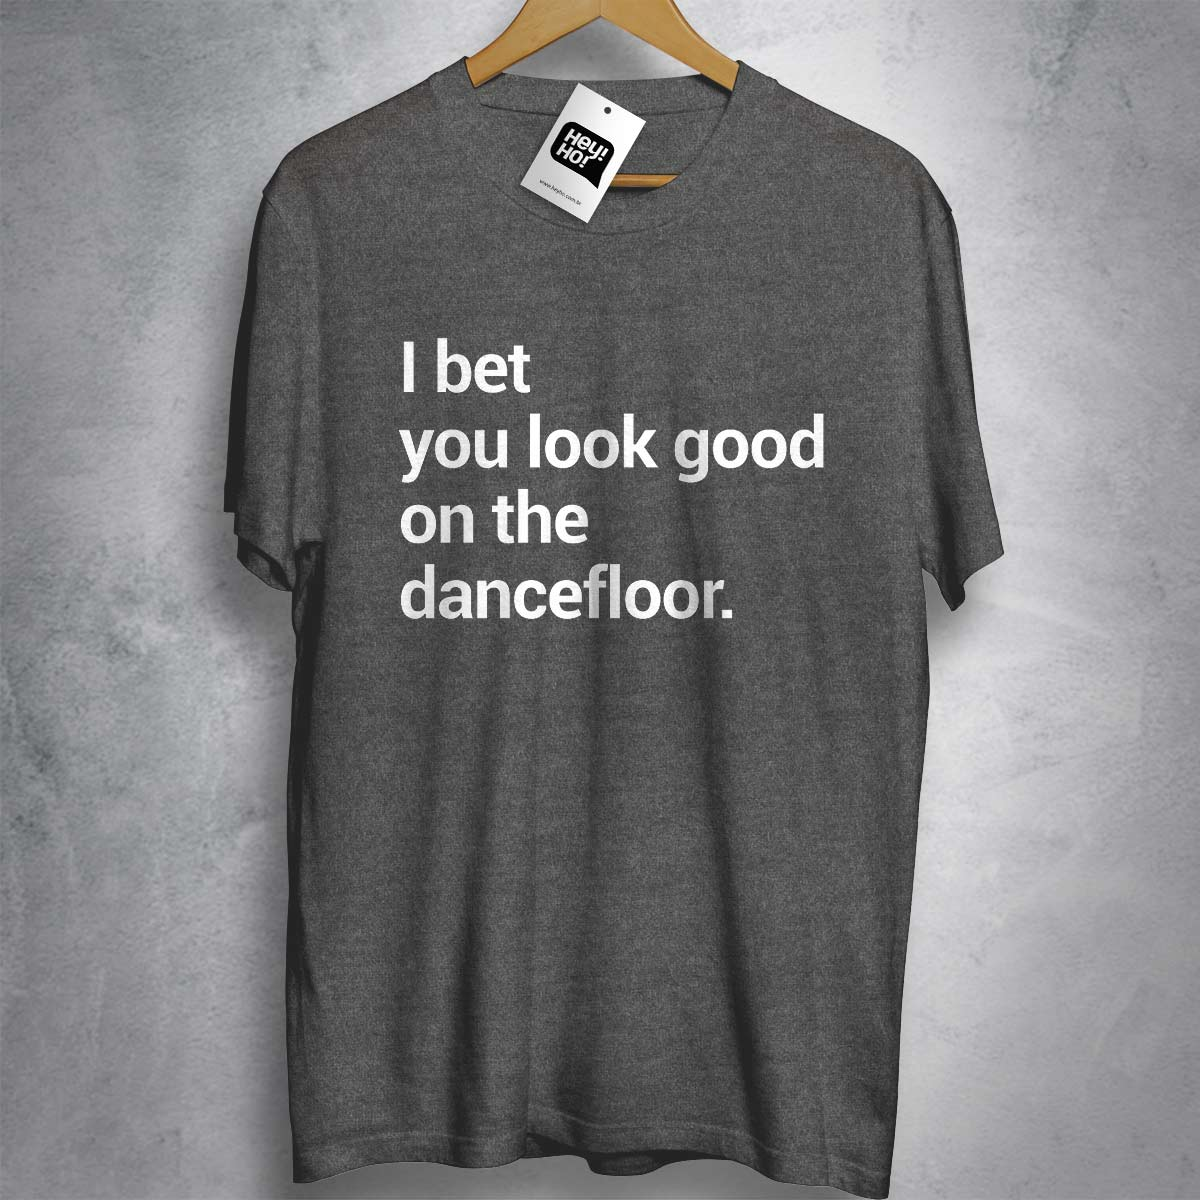 ARCTIC MONKEYS - I bet you look good on the dancefloor